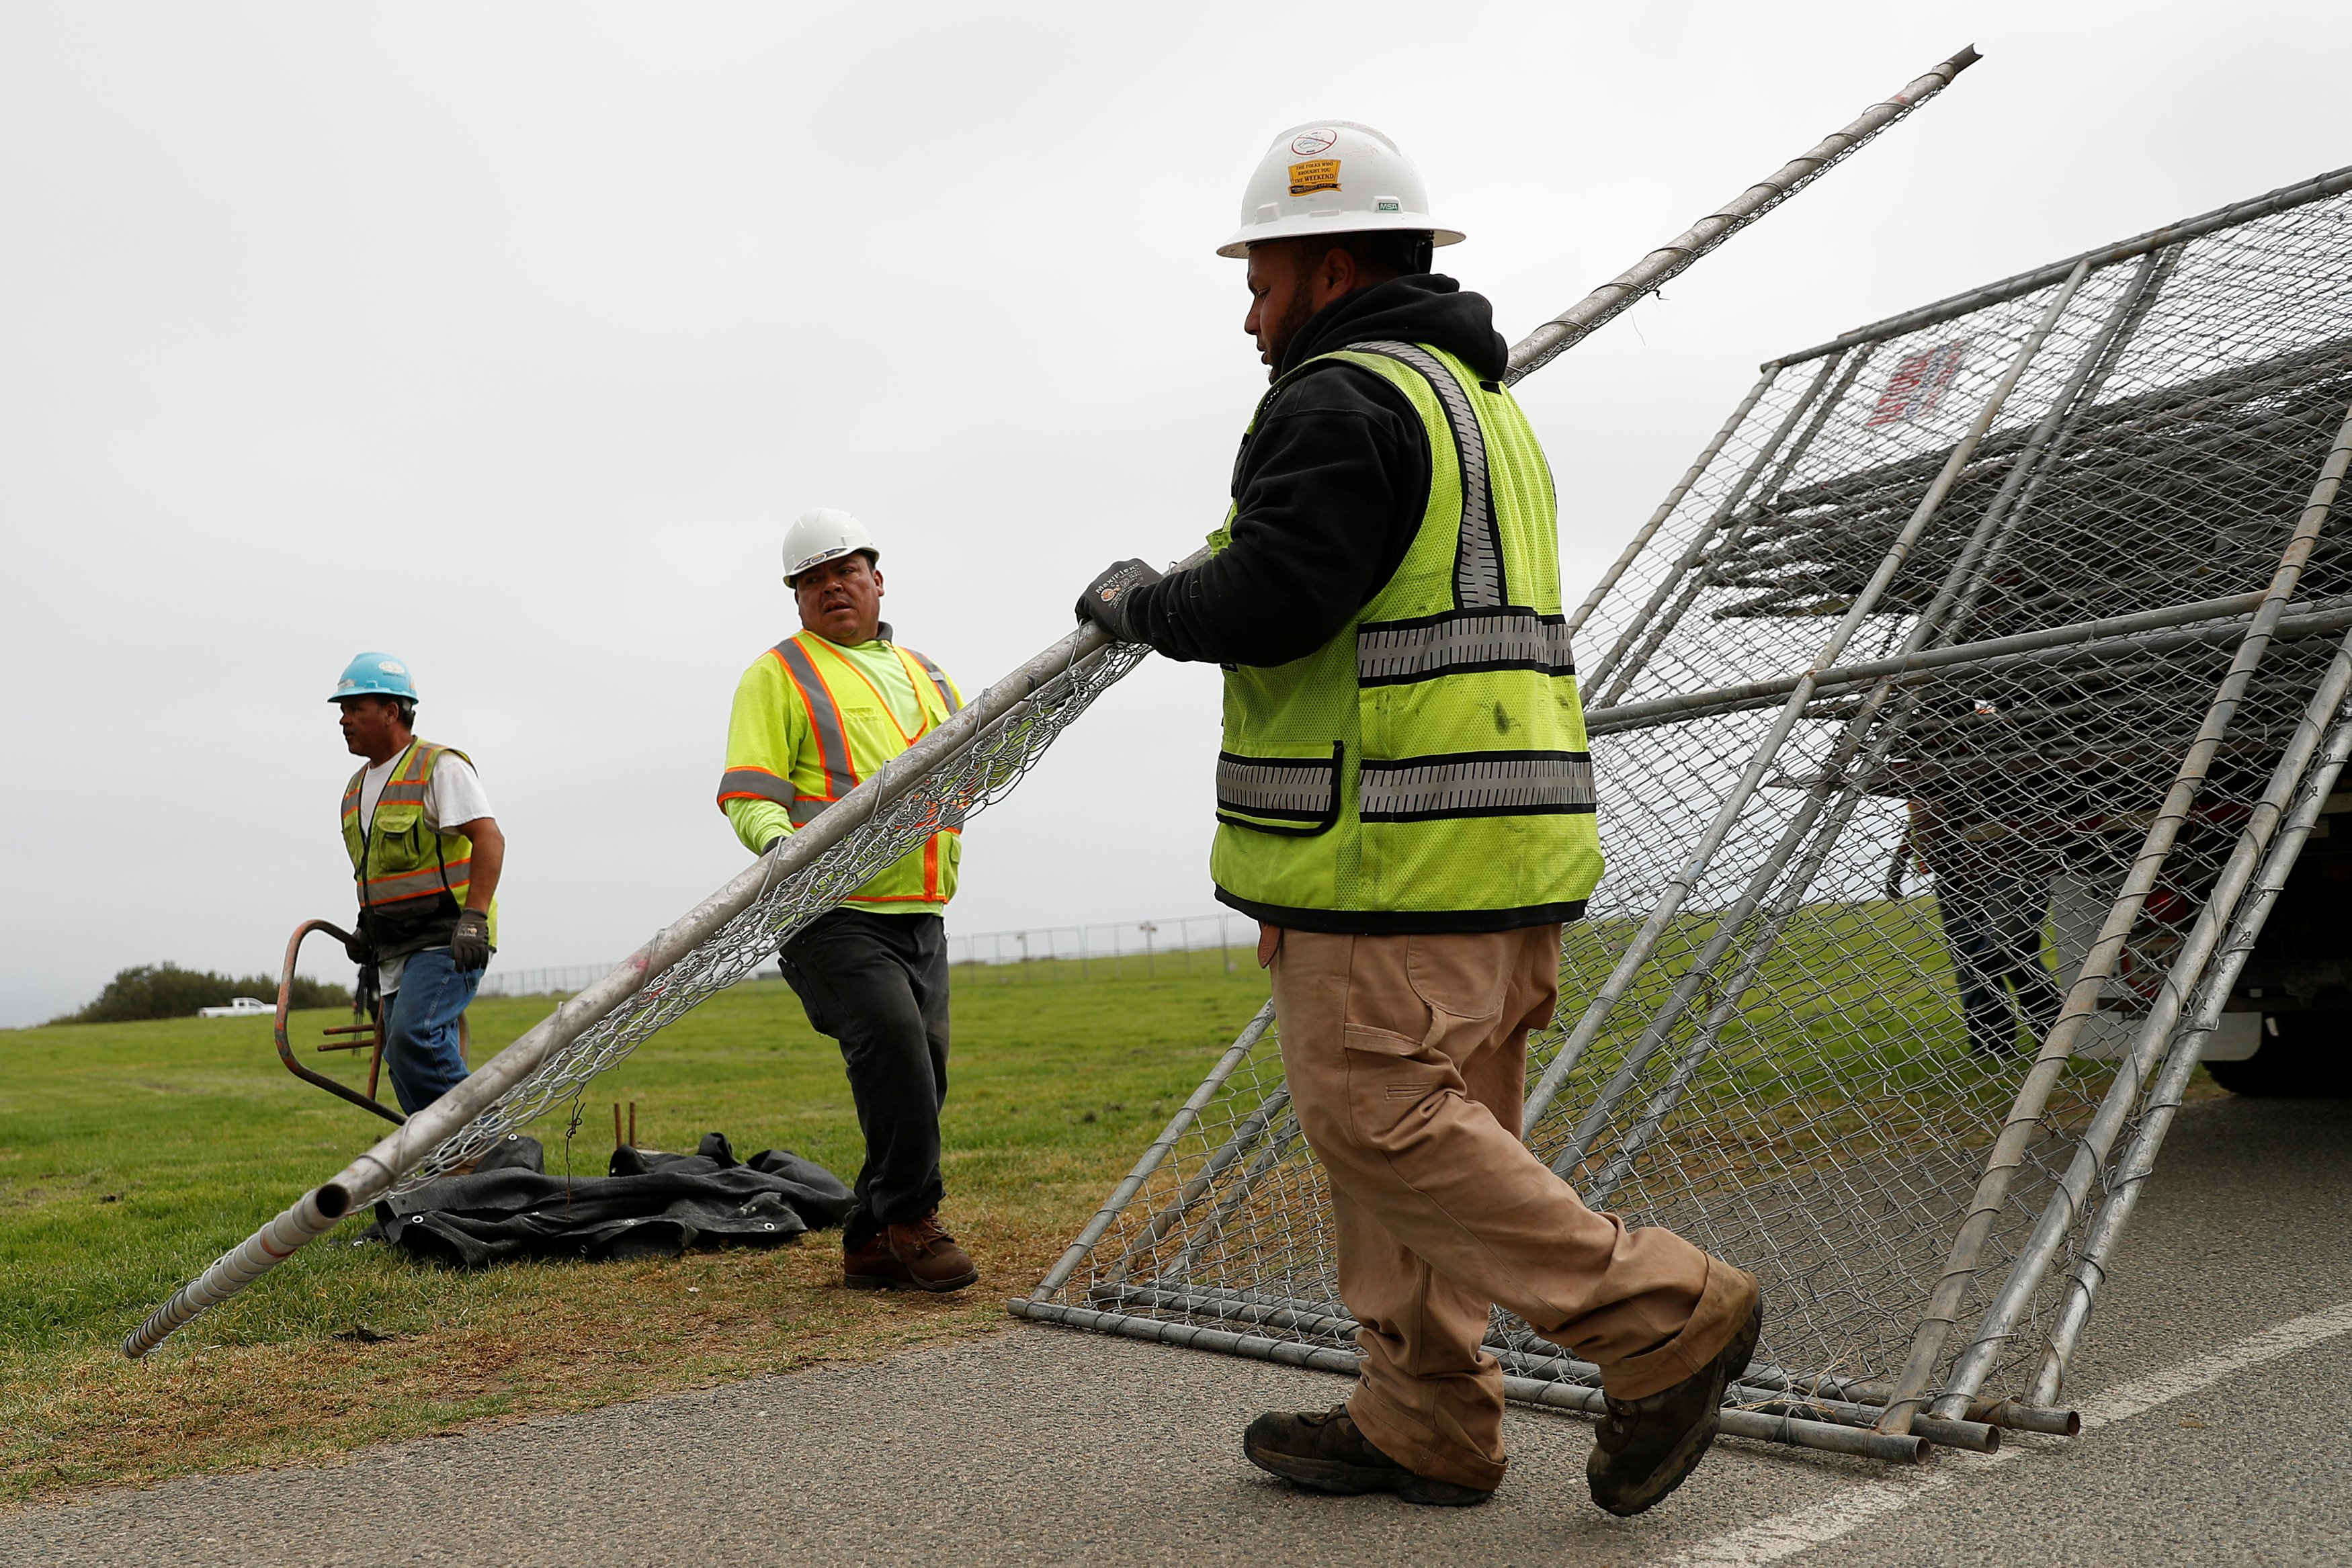 Image: Workers unload a chainlink fence at Crissy Field in anticipation of Saturday's Patriot Prayer rally and counter demonstration in San Francisco, California